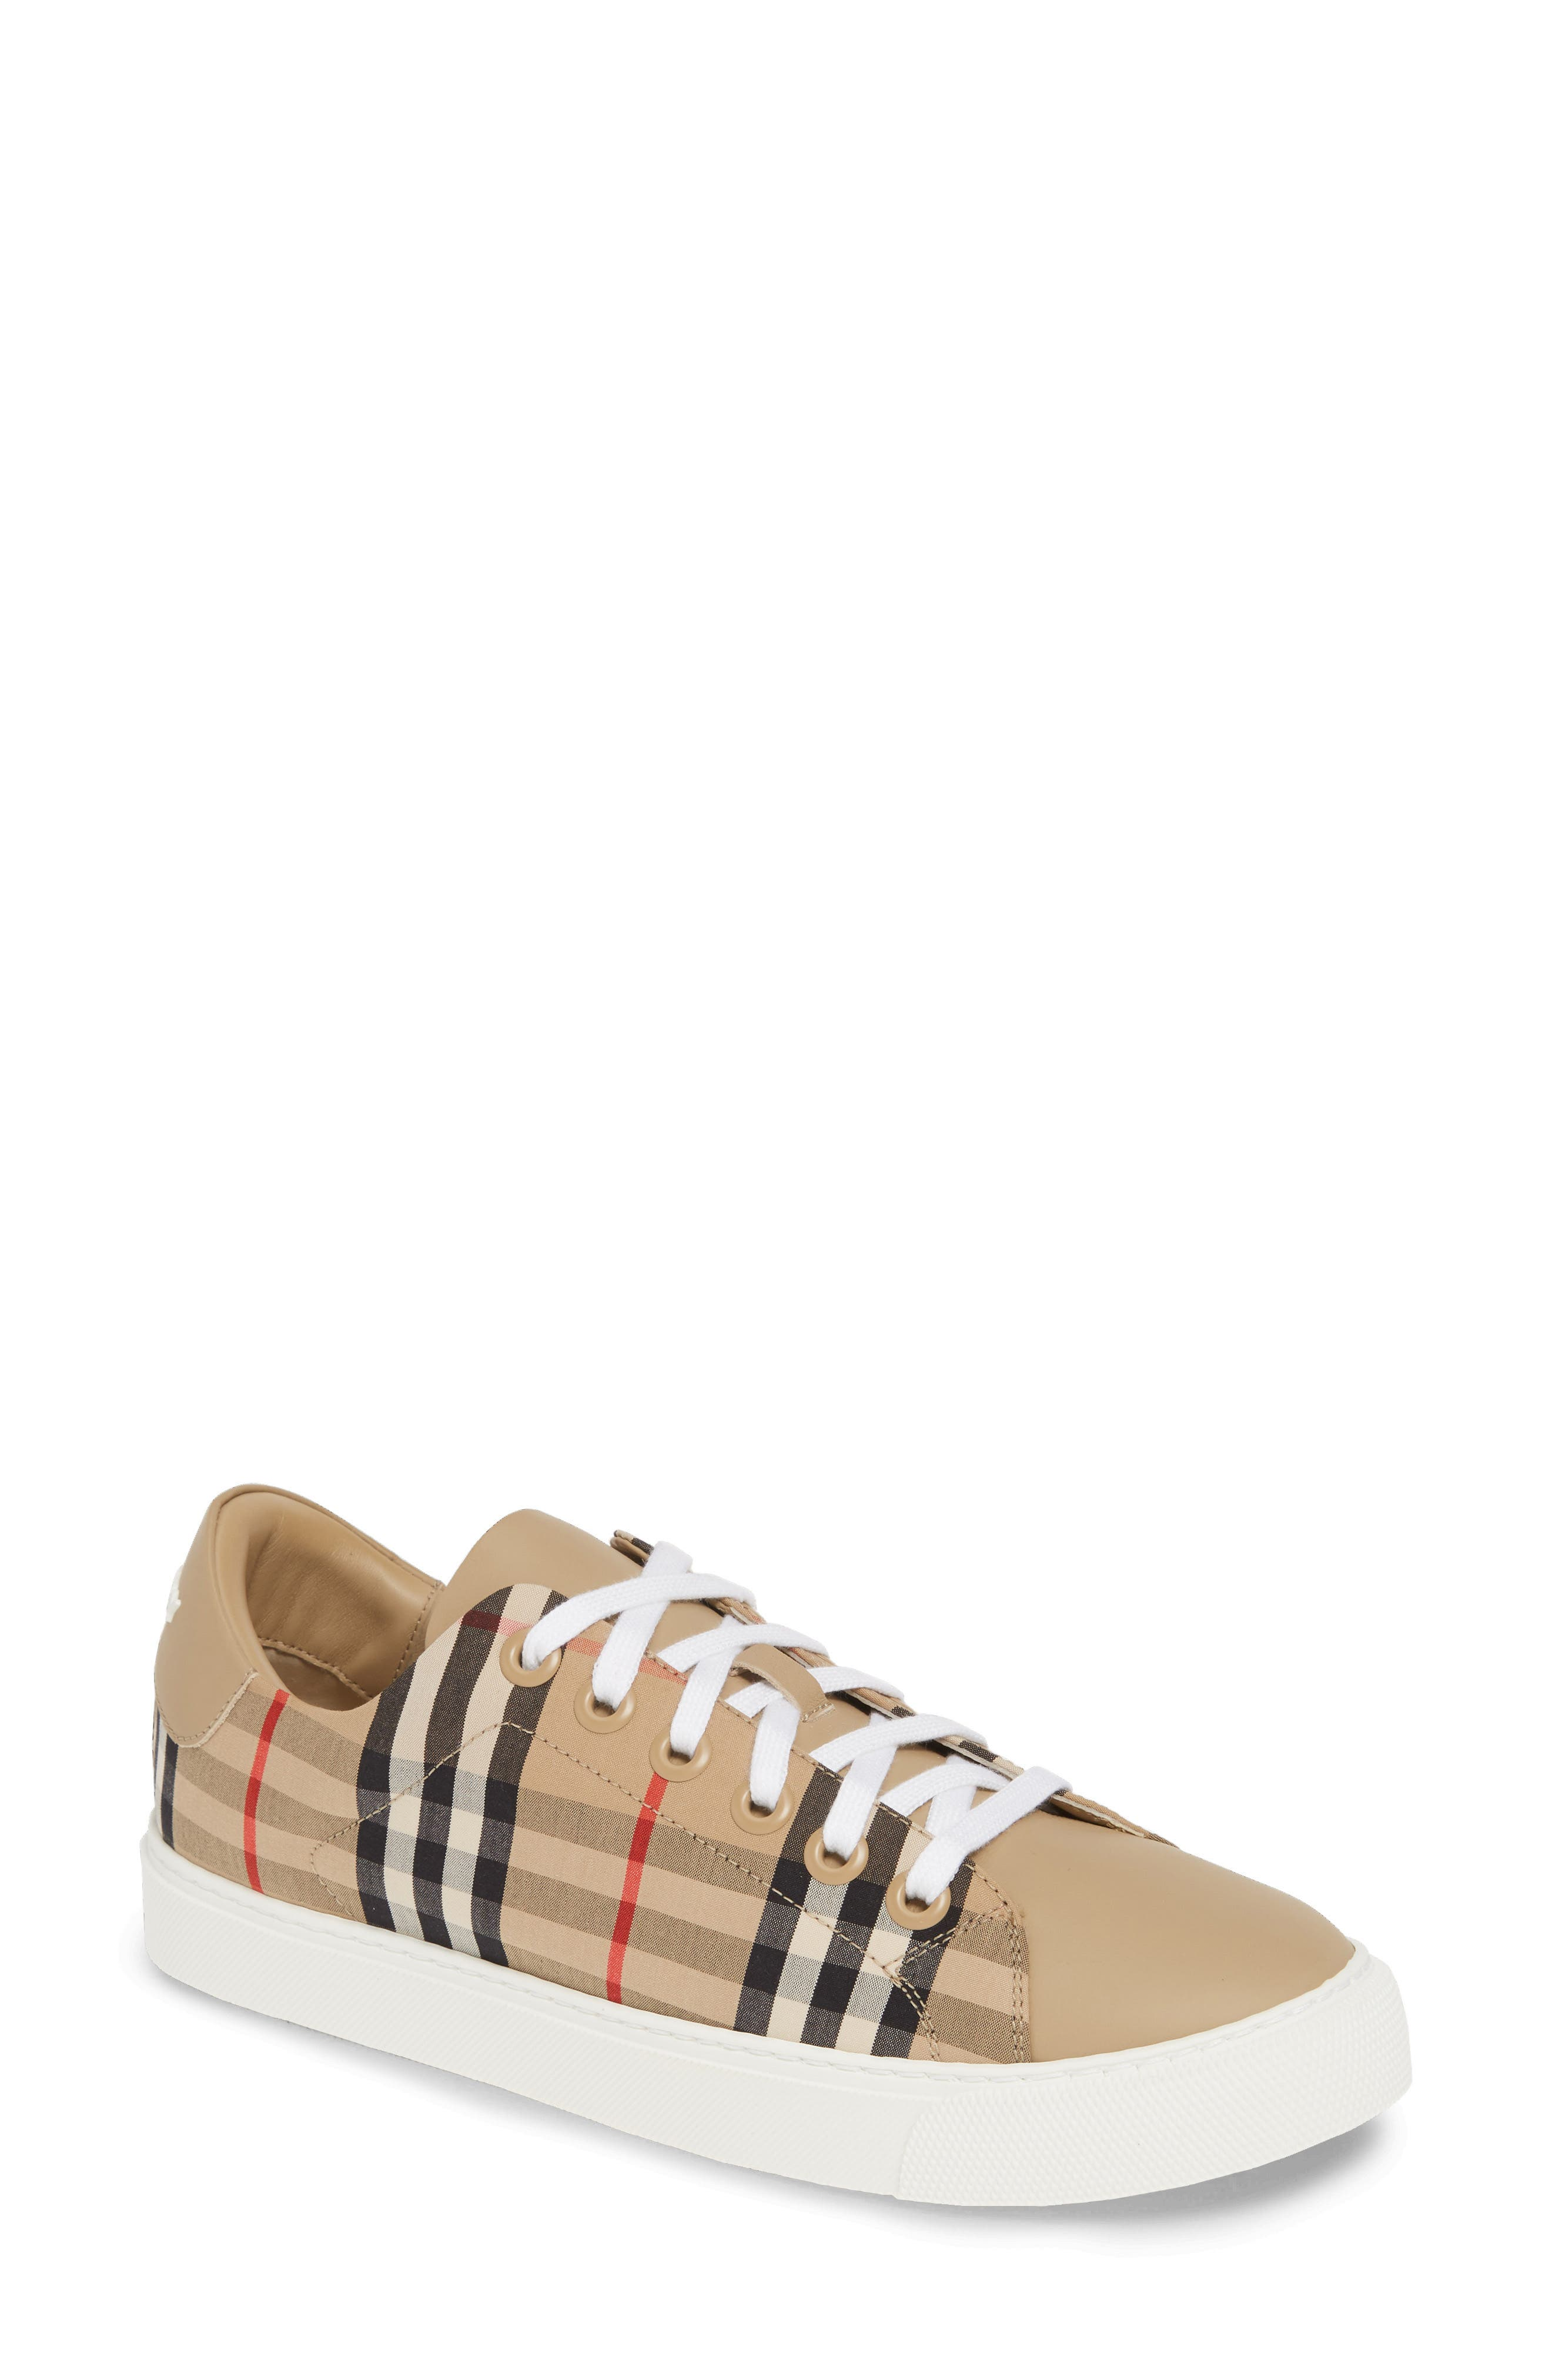 burberry outlet shoes